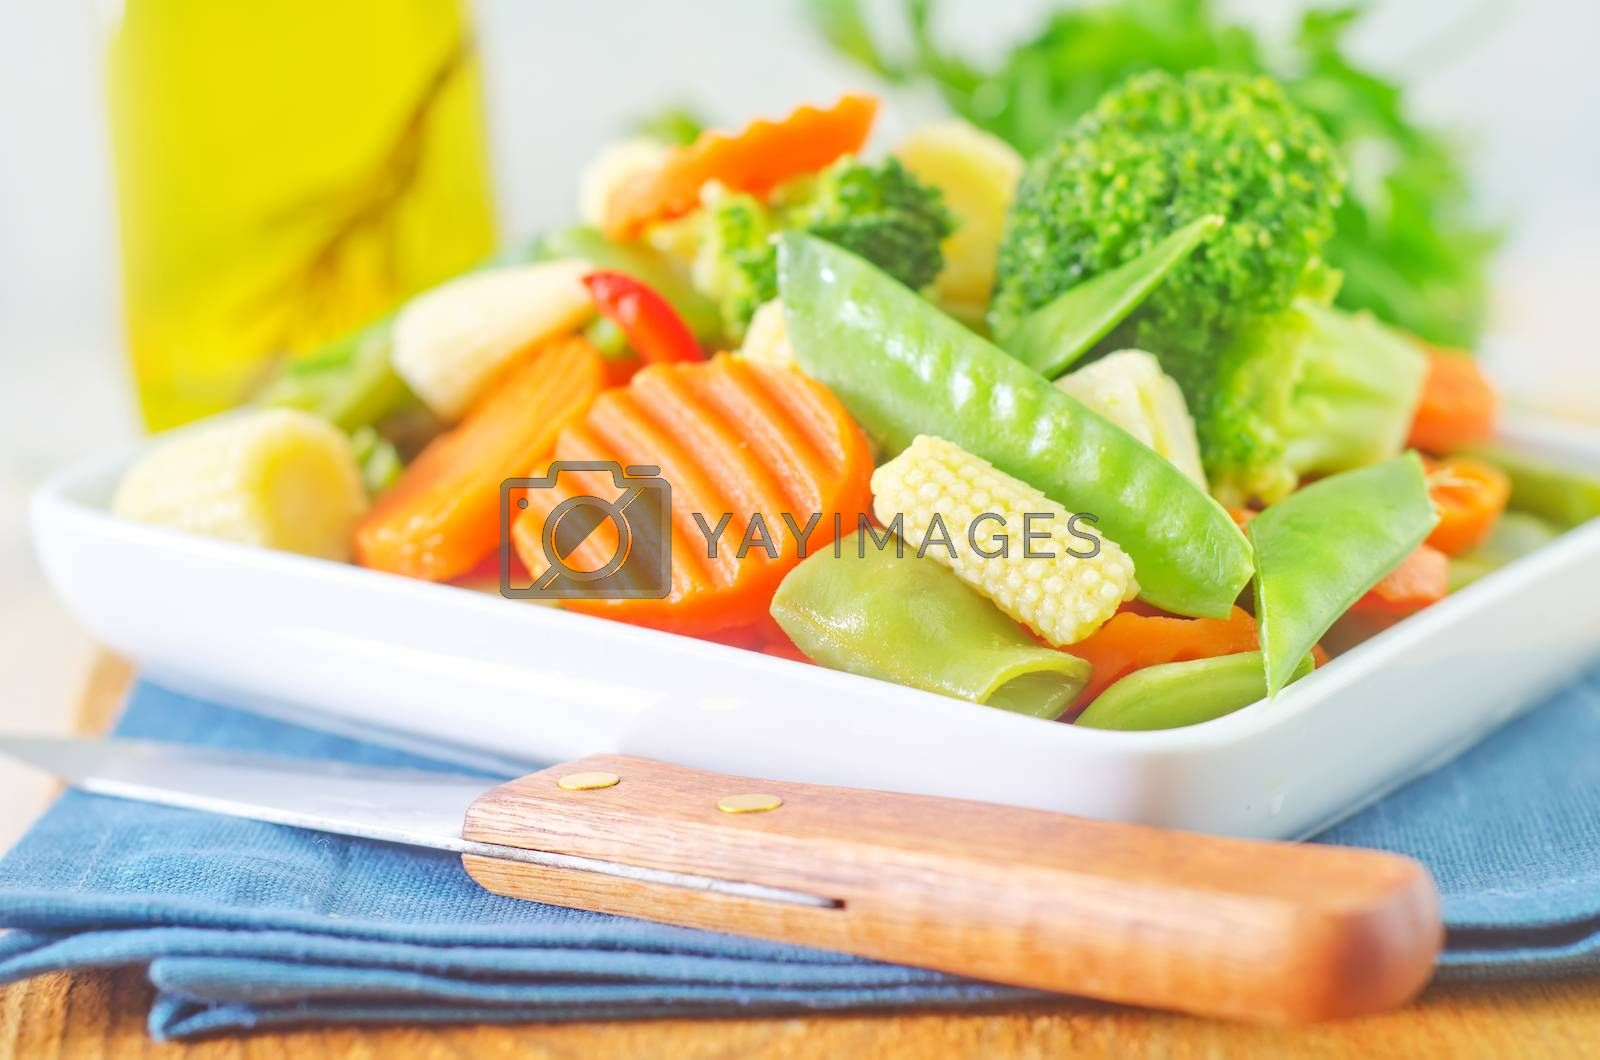 Royalty free image of vegetables by tycoon